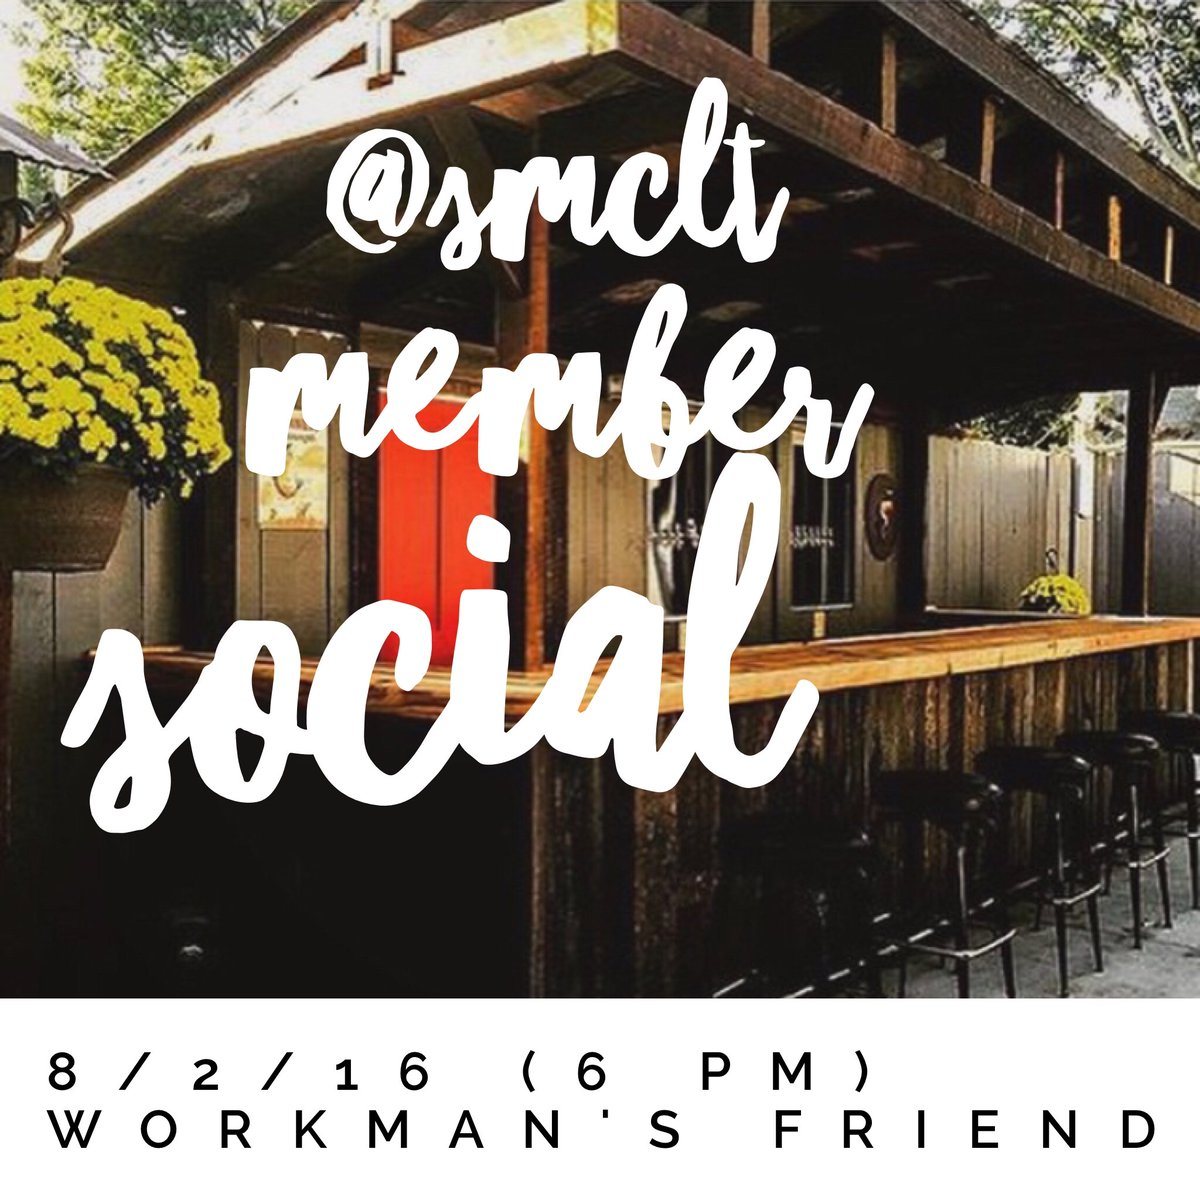 Members! Meet up w/ us for a beer next Tuesday! 1st round is on @yellowcabclt (current members)